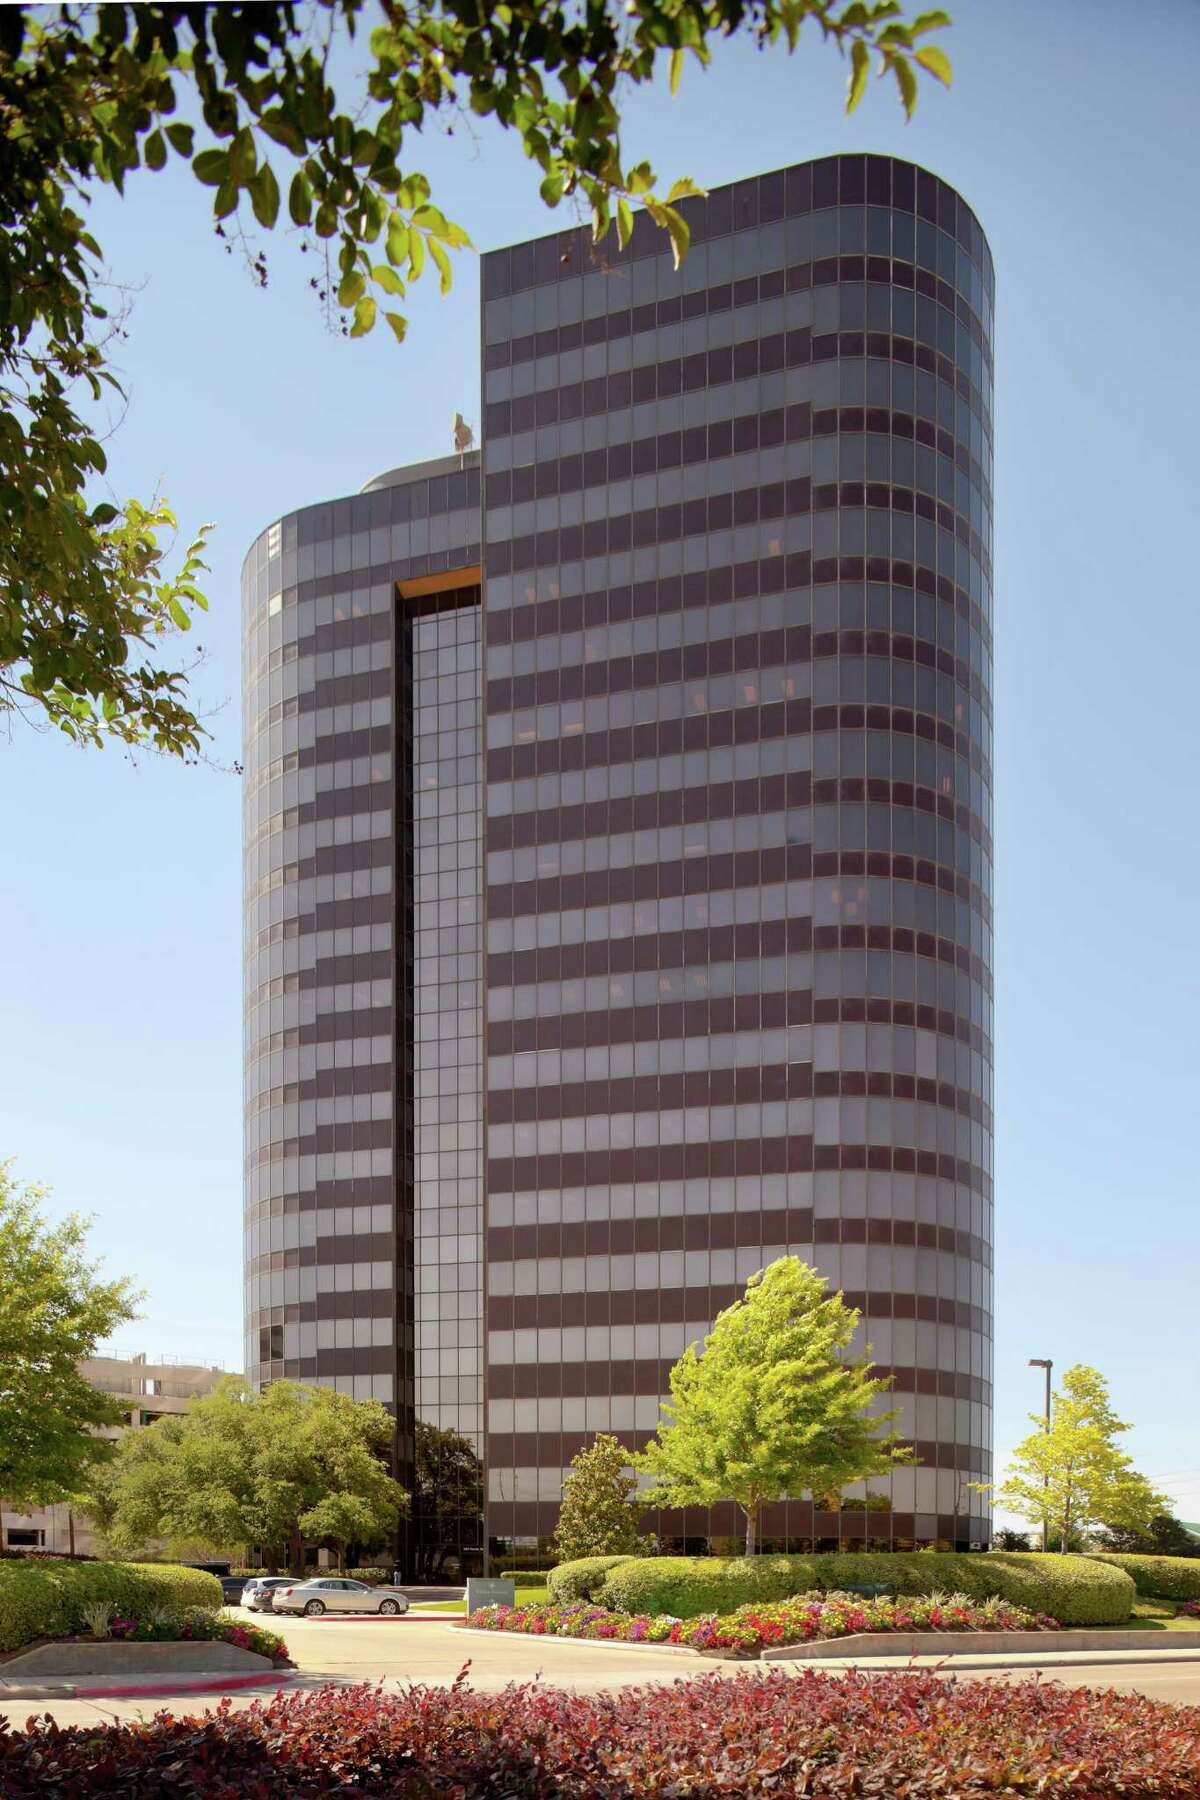 363 North Belt was completed in 1982 and renovated from 2016 to 2019. Realty.com has purchased the building.